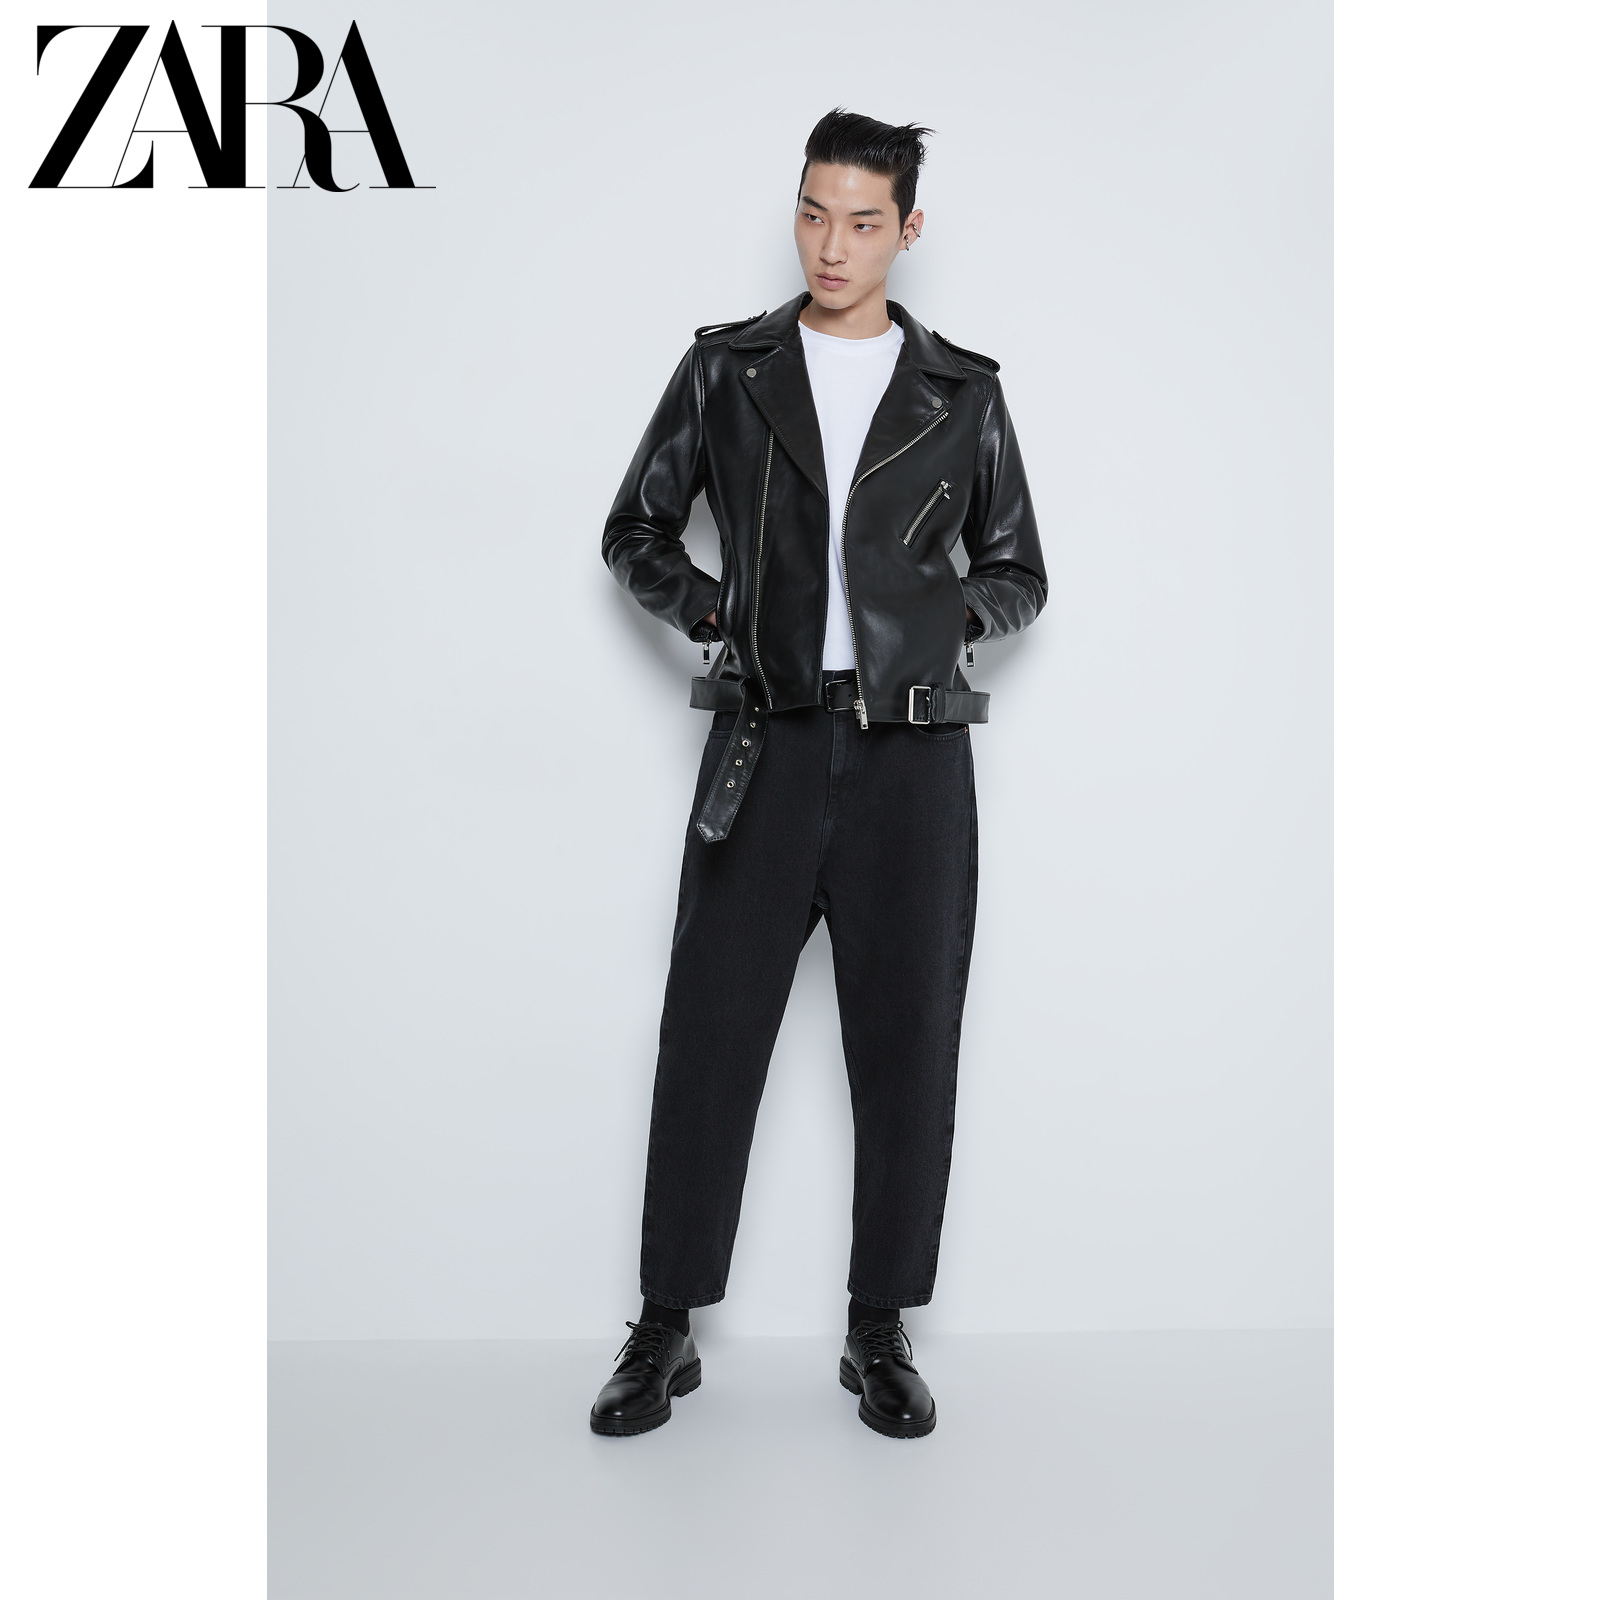 Zara new men's mouse Series Locomotive leather jacket 00706492800